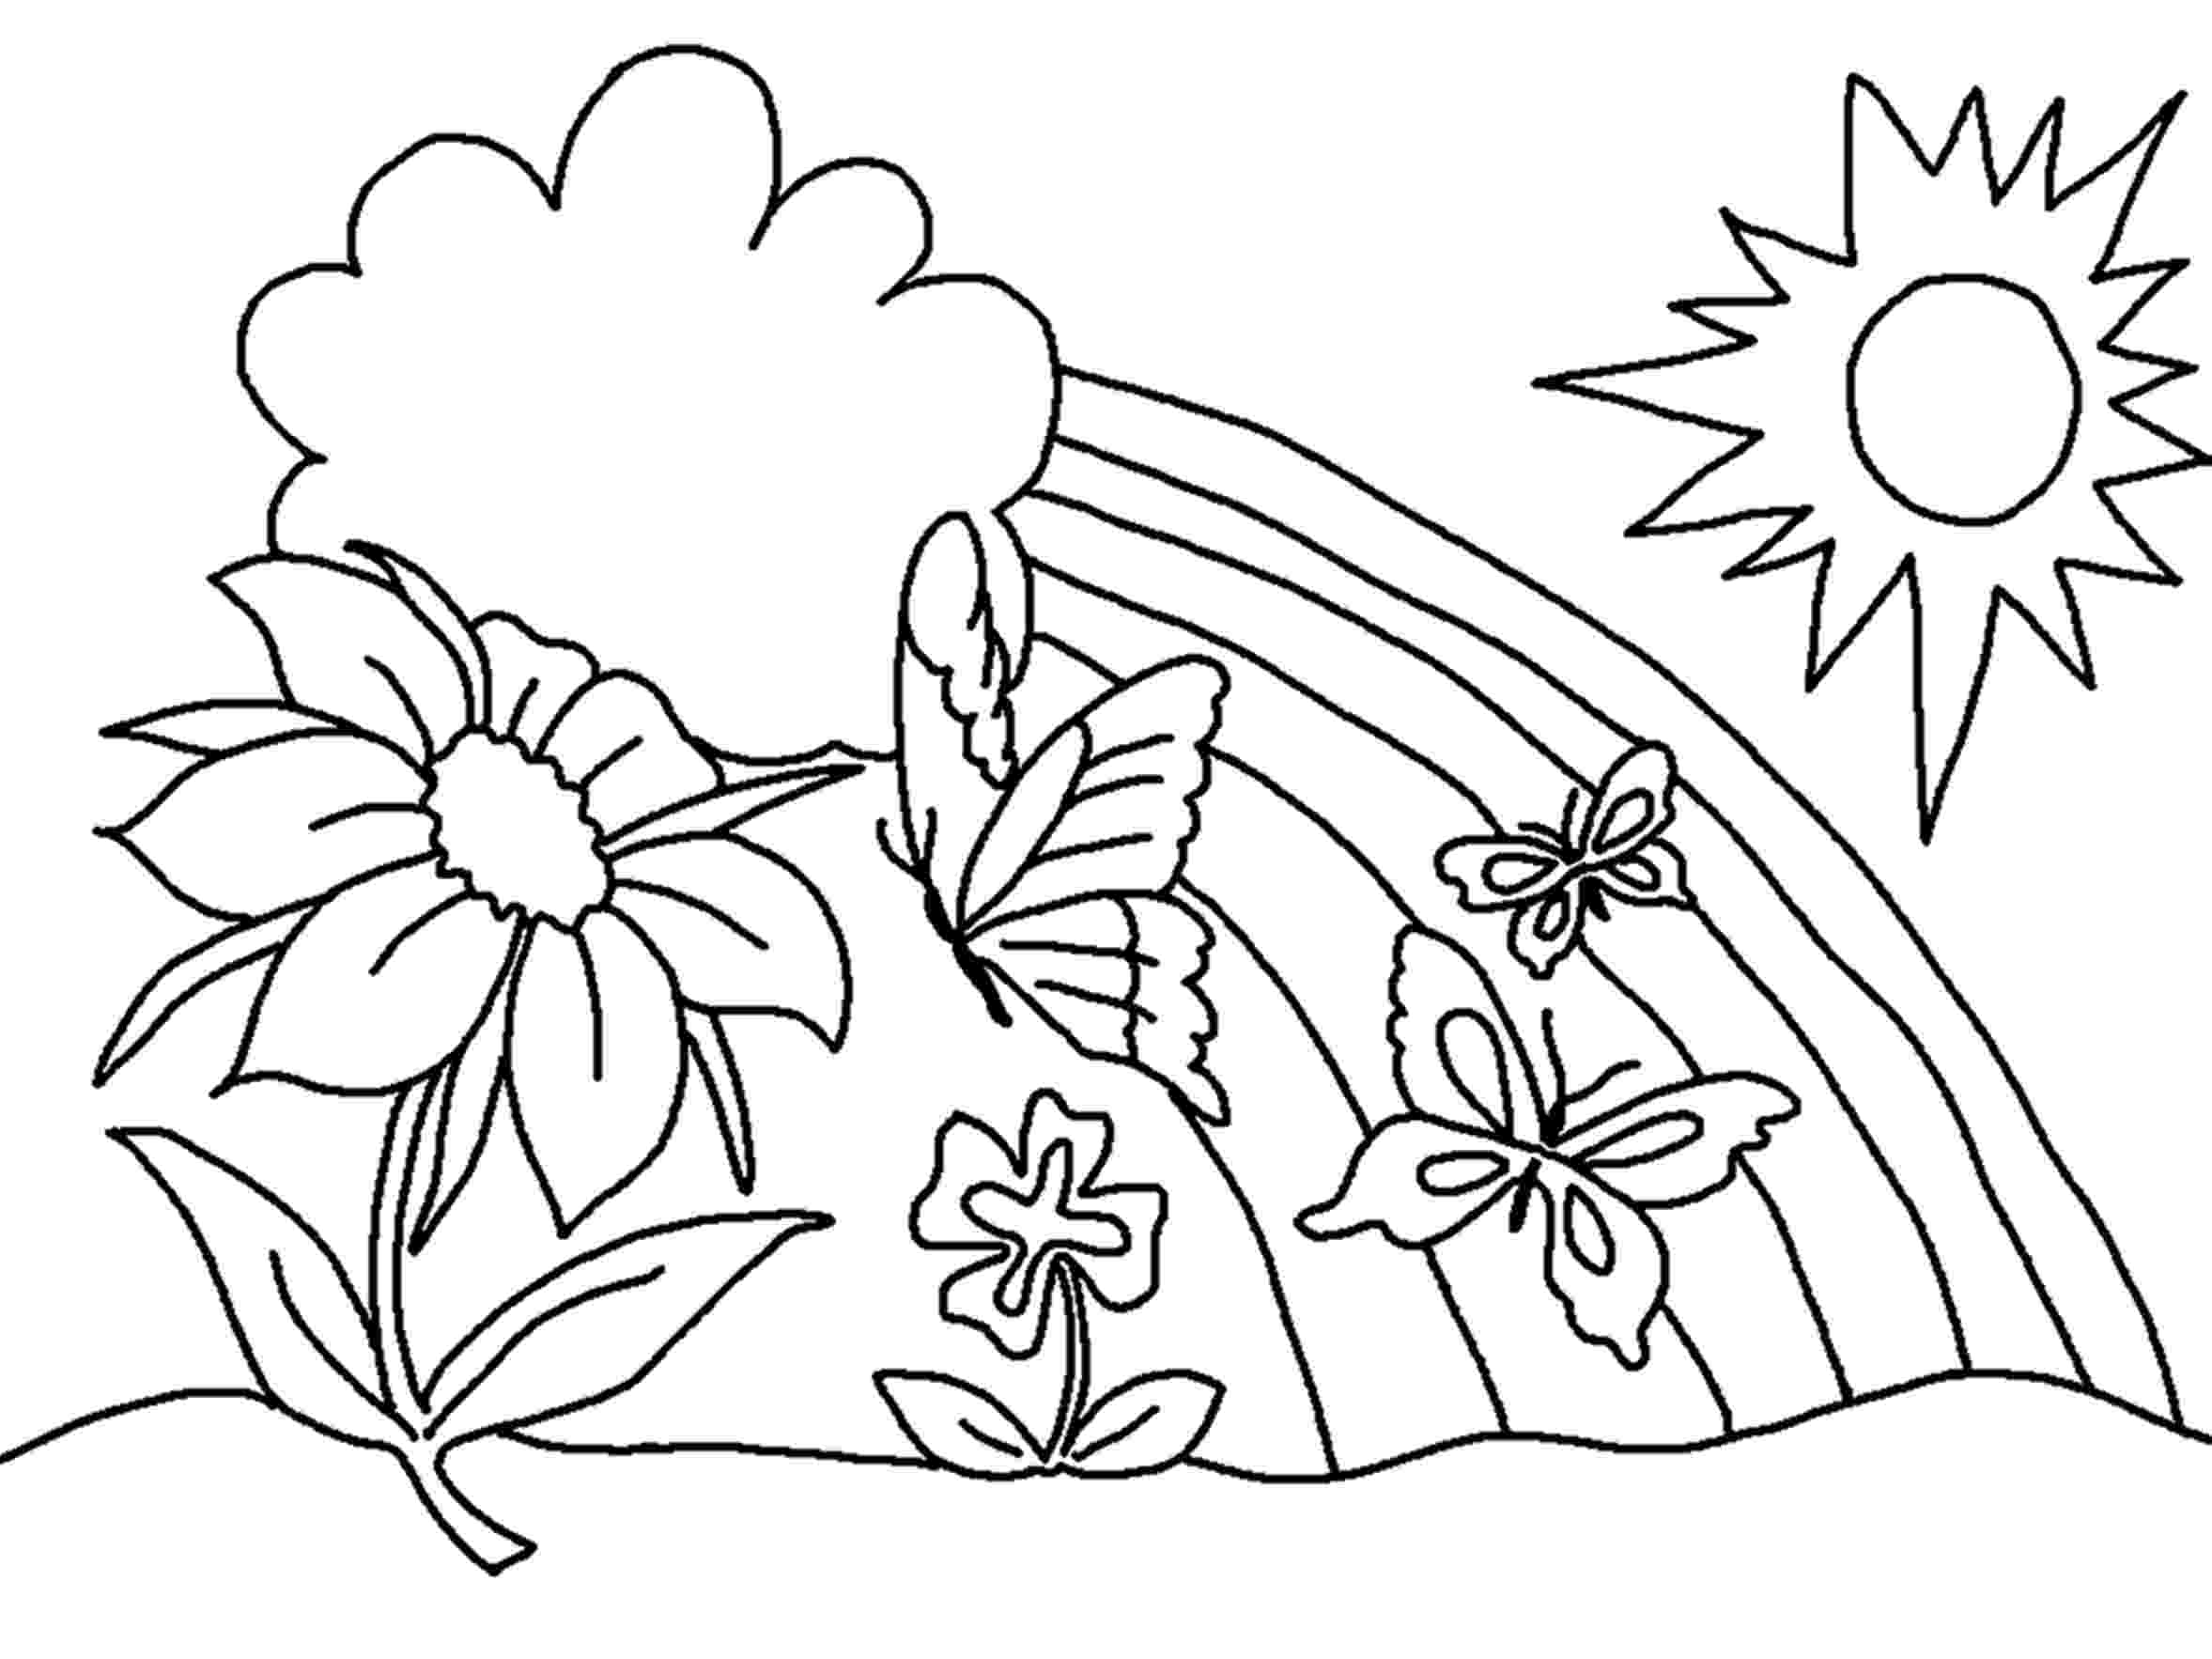 flowers to color print free printable flower coloring pages for kids best to color print flowers